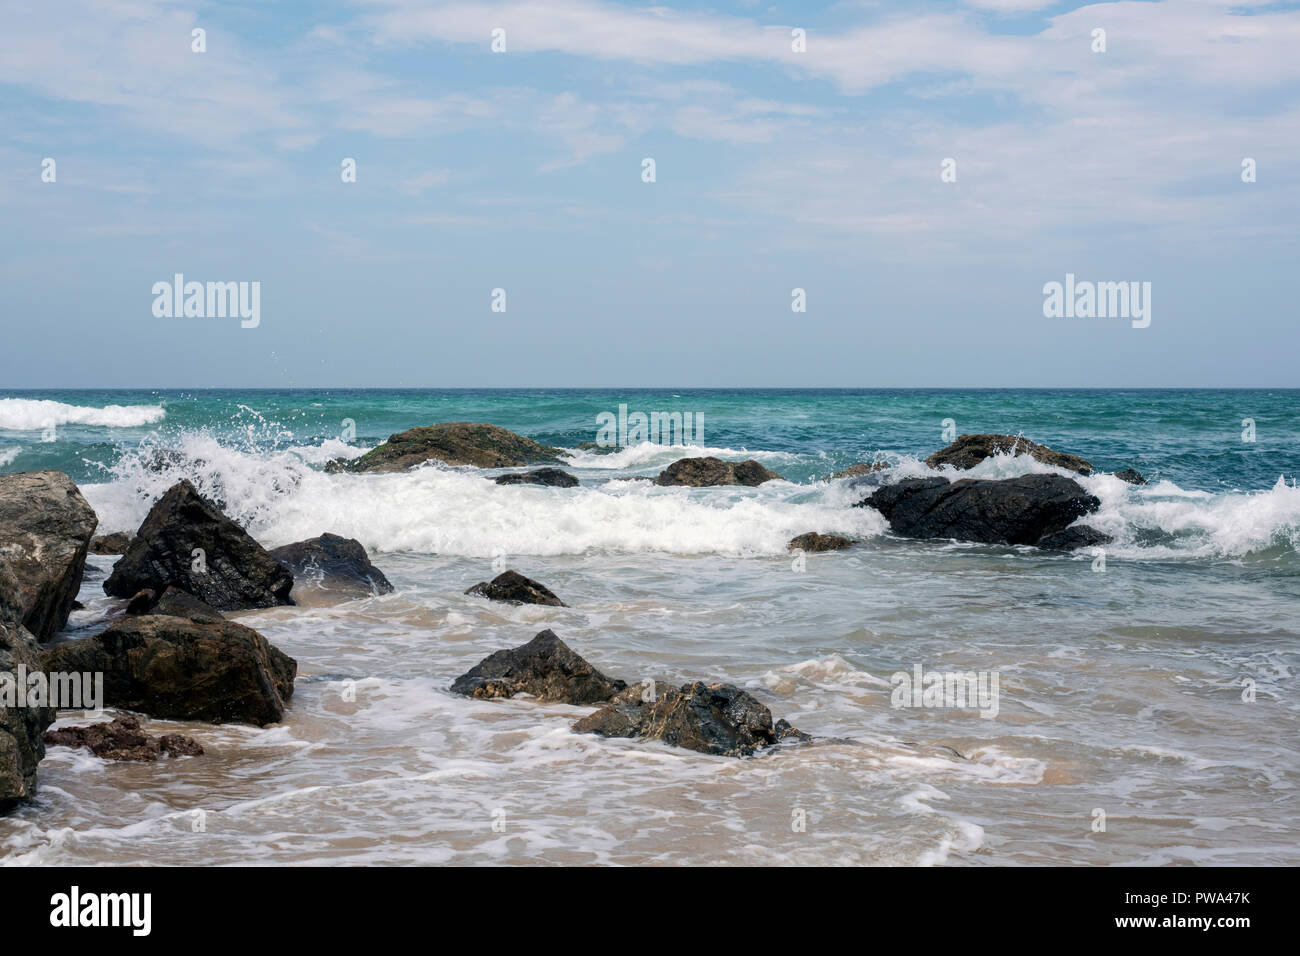 Waves lapping against rocks on the seashore in fine weather. - Stock Image